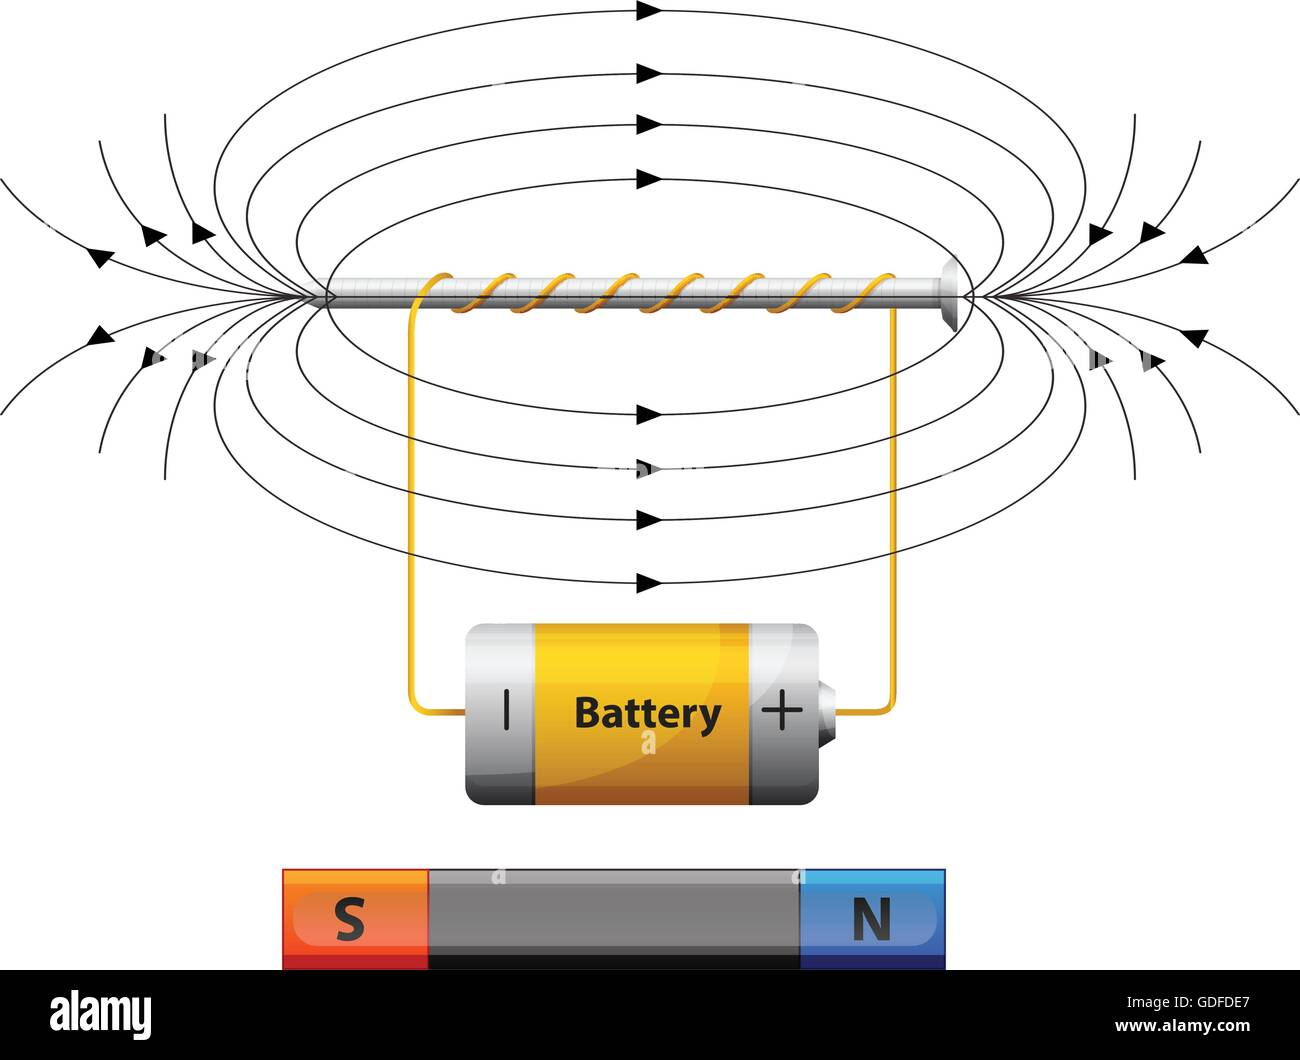 Diagram showing magnetic field with battery illustration stock diagram showing magnetic field with battery illustration ccuart Image collections